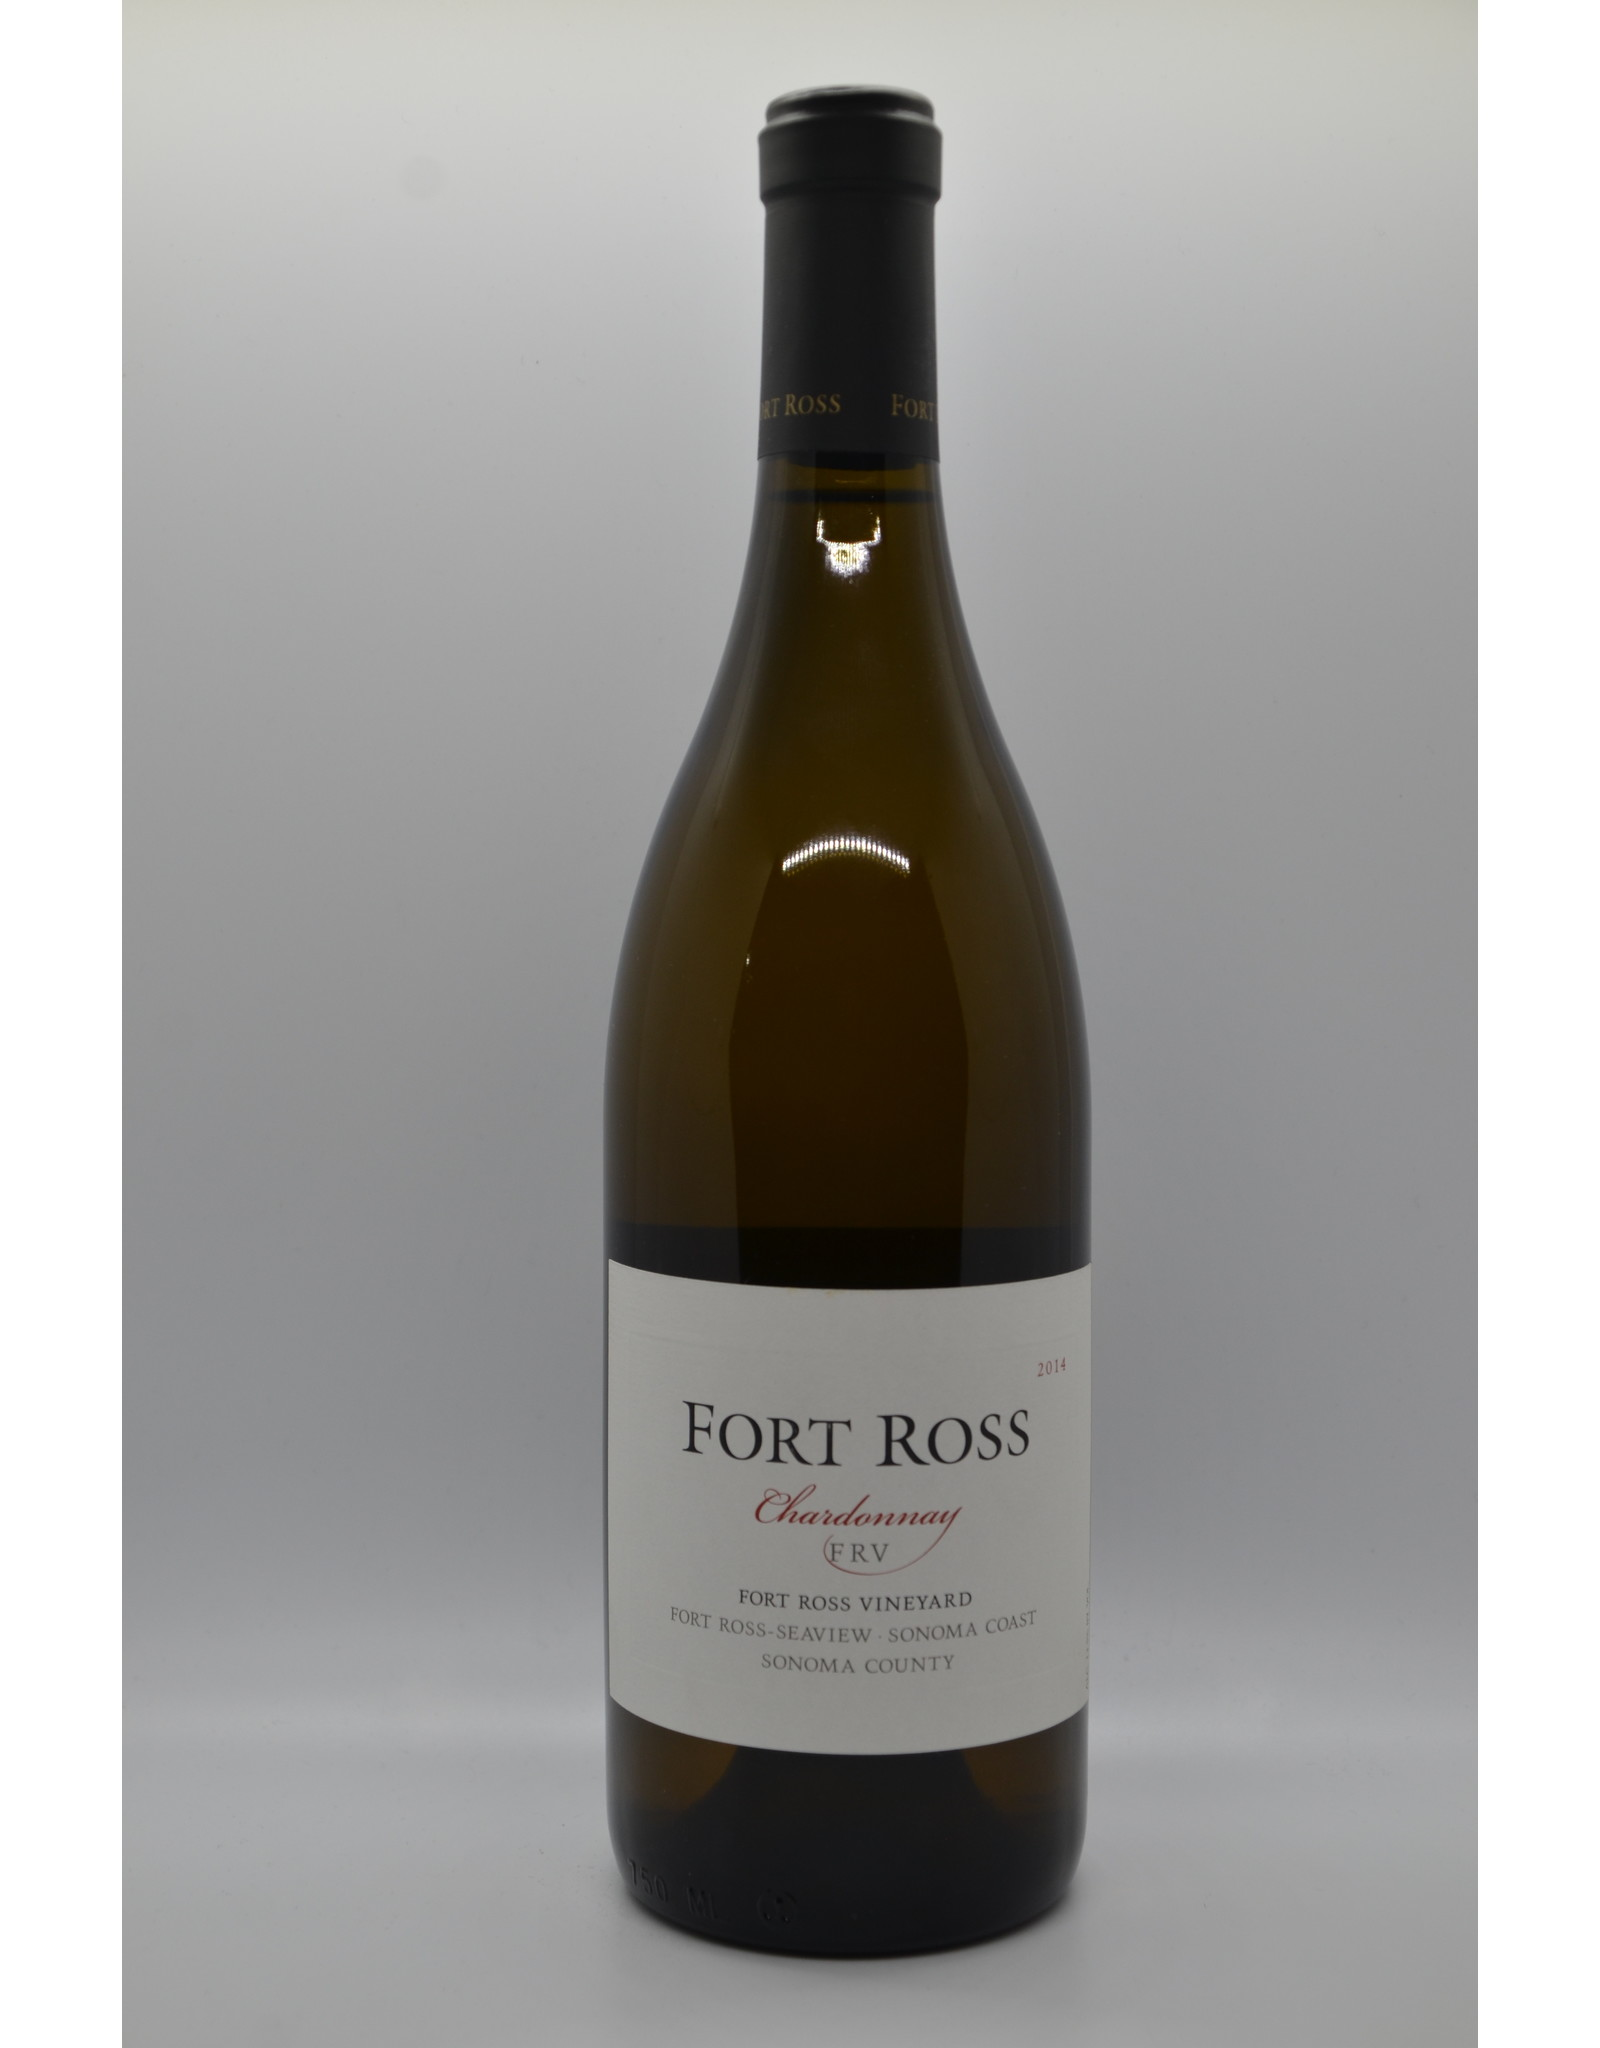 USA Fort Ross Vineyard Chardonnay